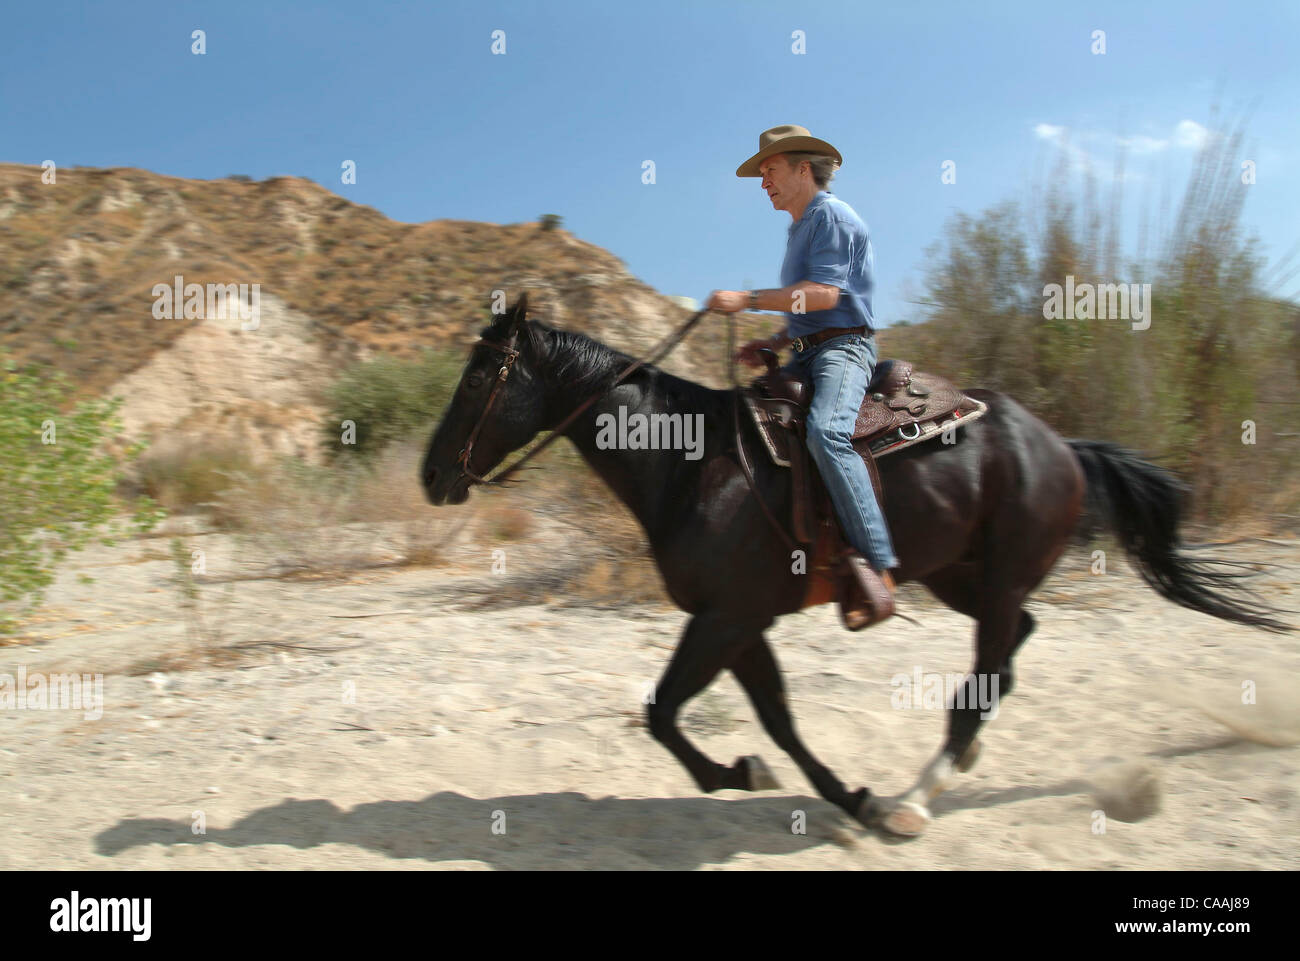 David Carradine Stockfotos & David Carradine Bilder - Seite 3 - Alamy